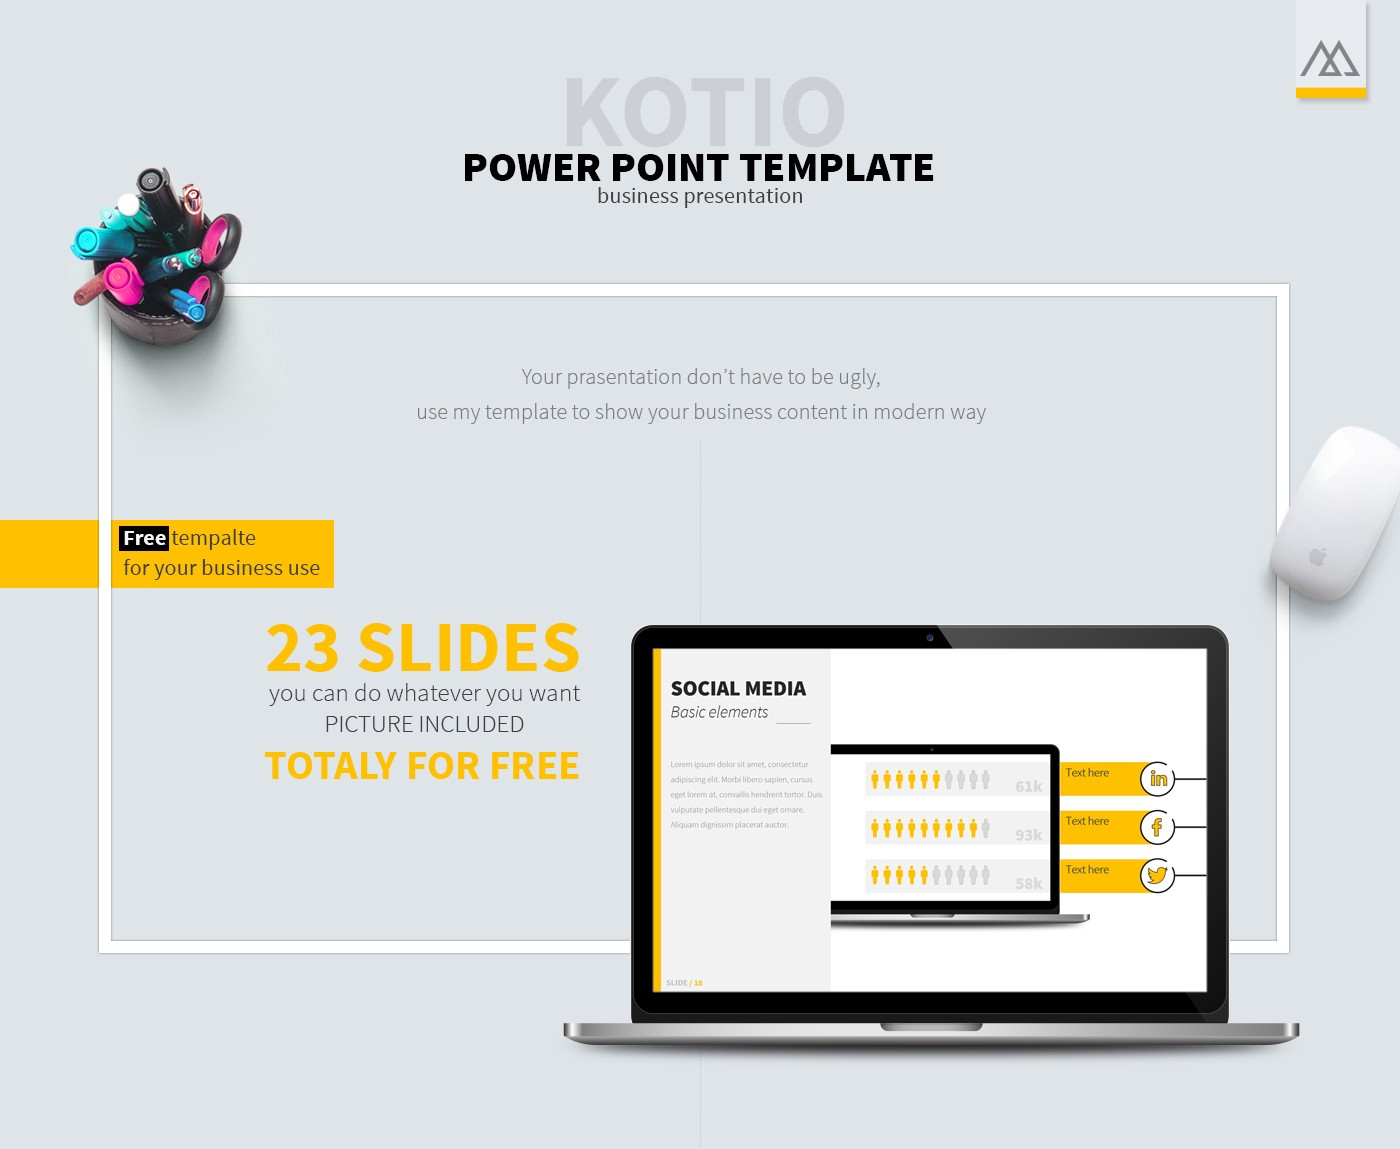 40 free cool powerpoint templates for presentations you can customize every slide to fit your presentation and its ready to use photos are easy to access therefore no time wasted download cheaphphosting Images